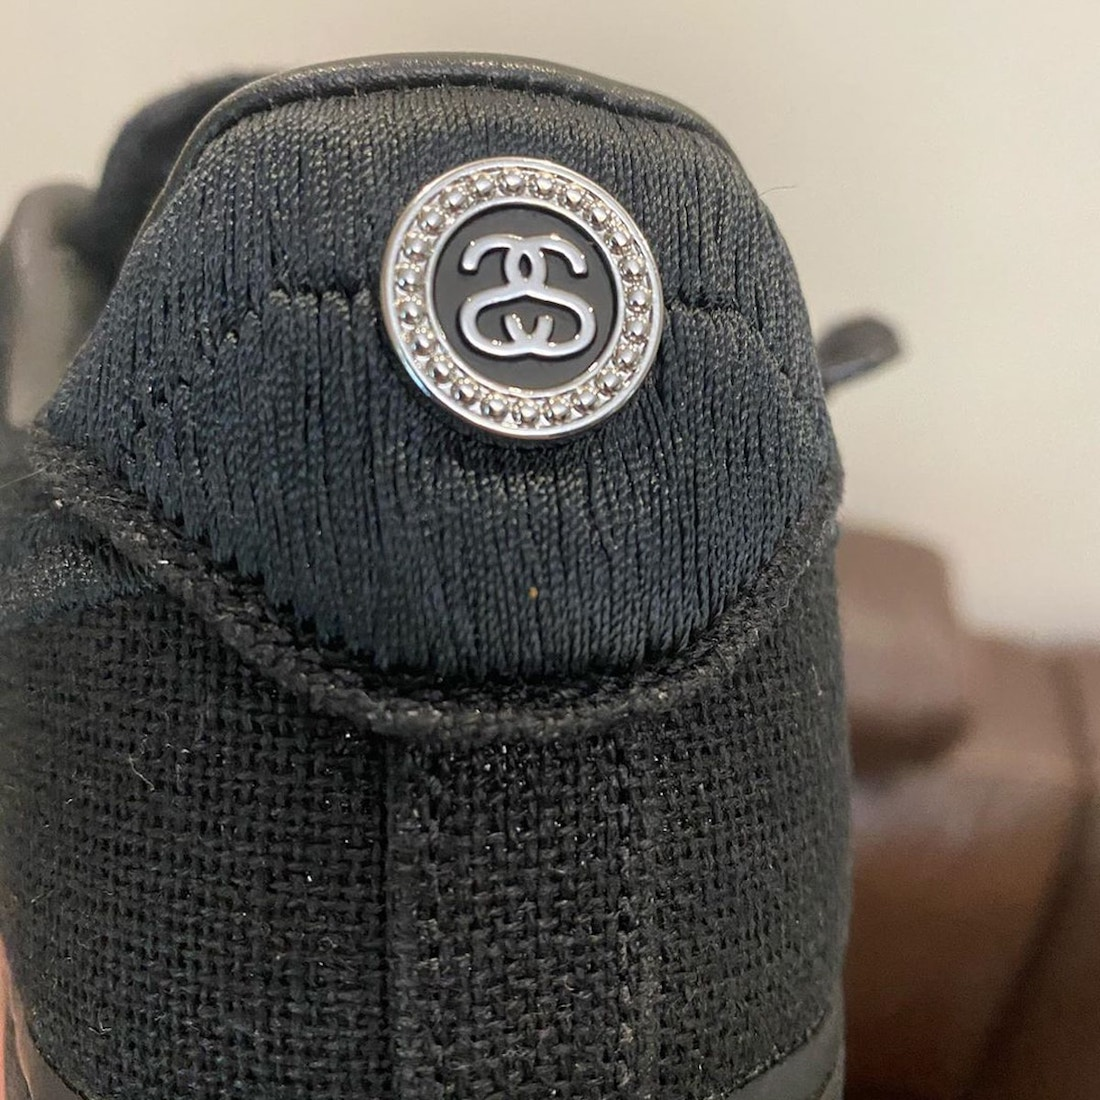 Stussy Nike Air Force 1 Low Black CZ9084-001 Release Date Info